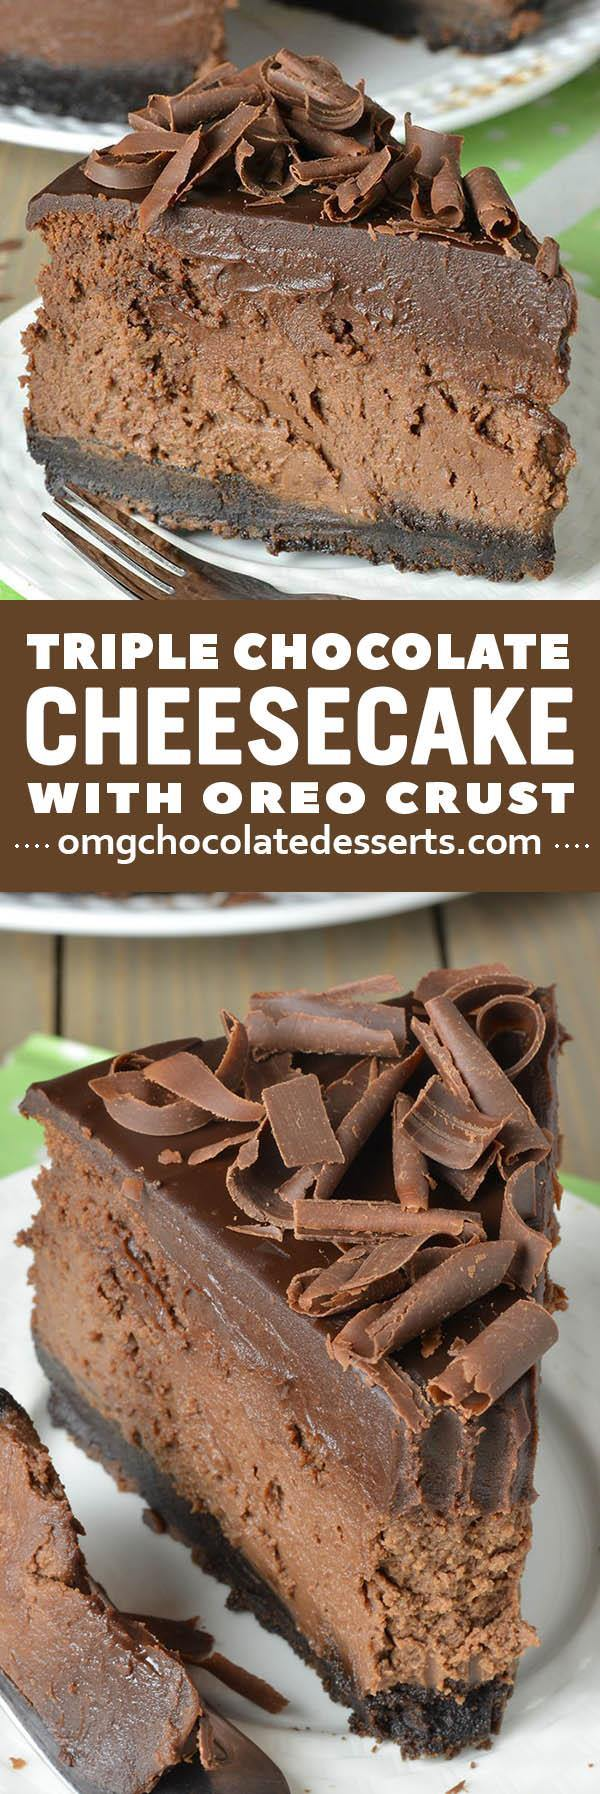 Triple Chocolate Cheesecake with Oreo Crust OMG Chocolate Desserts